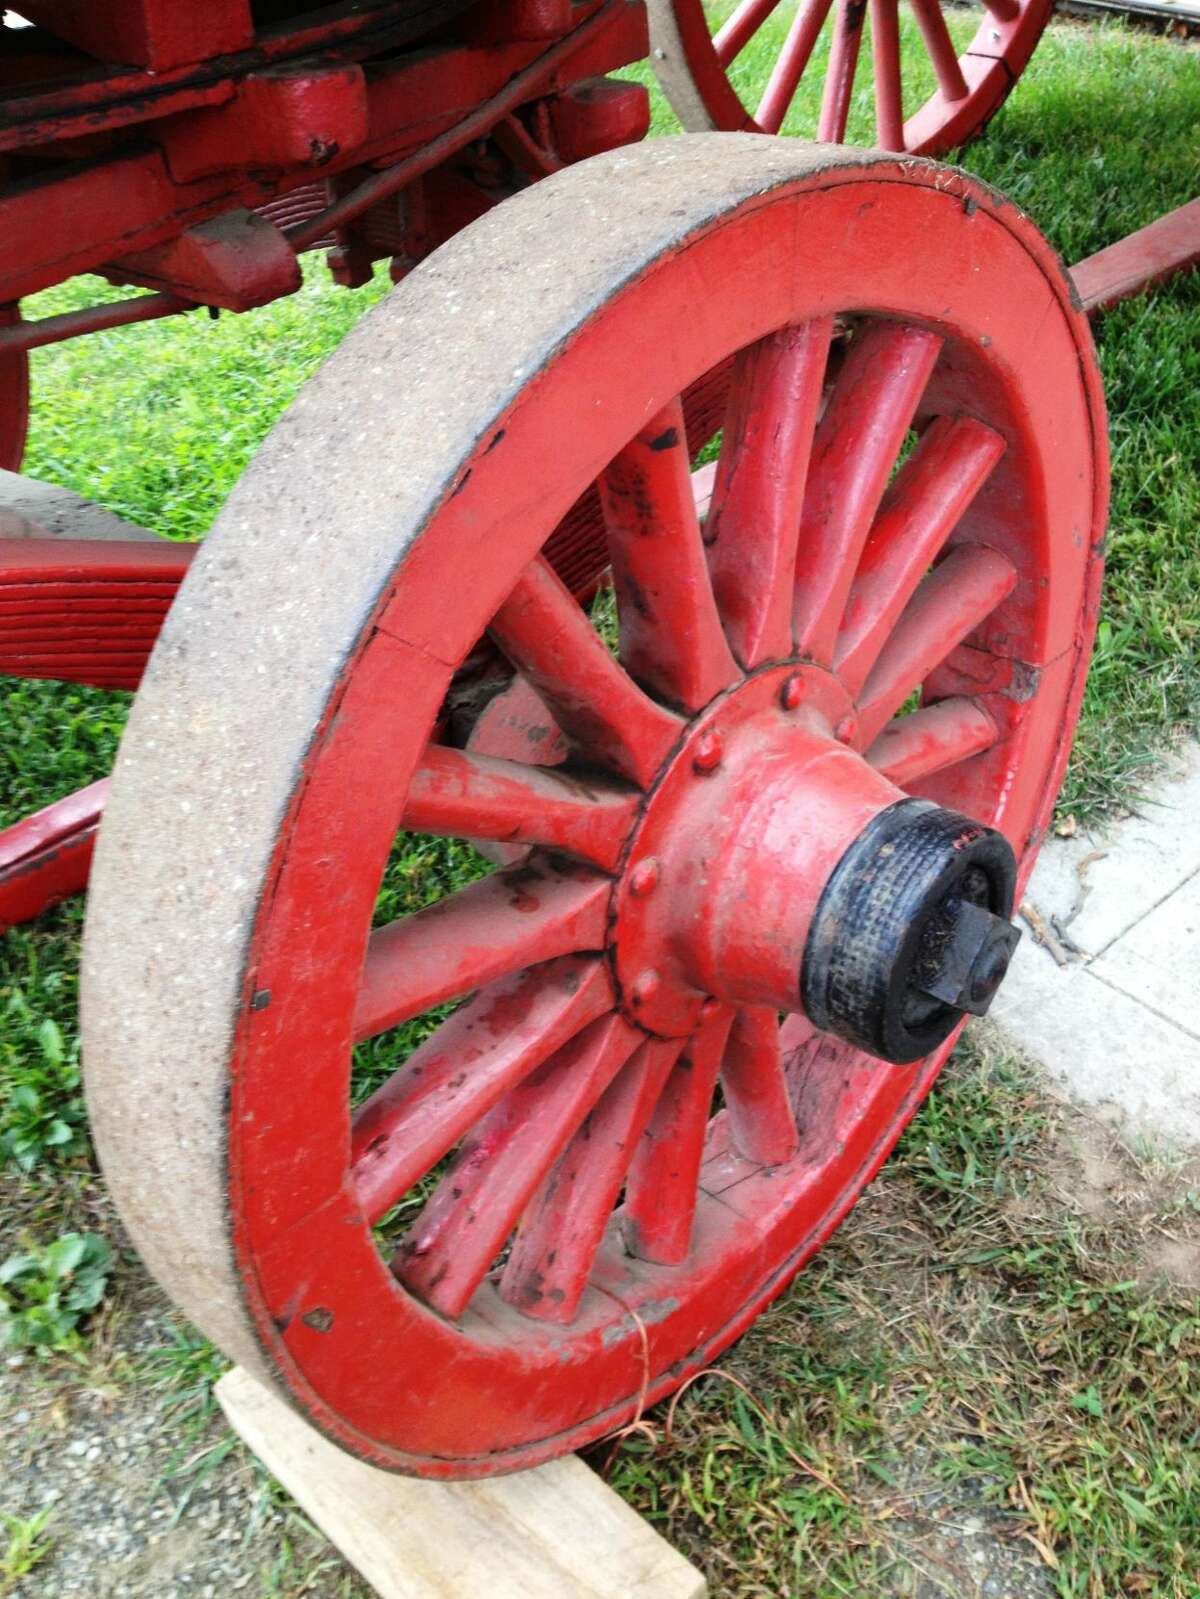 Image from the Orange Country Fair, which annually celebrates the region's agrarian past.